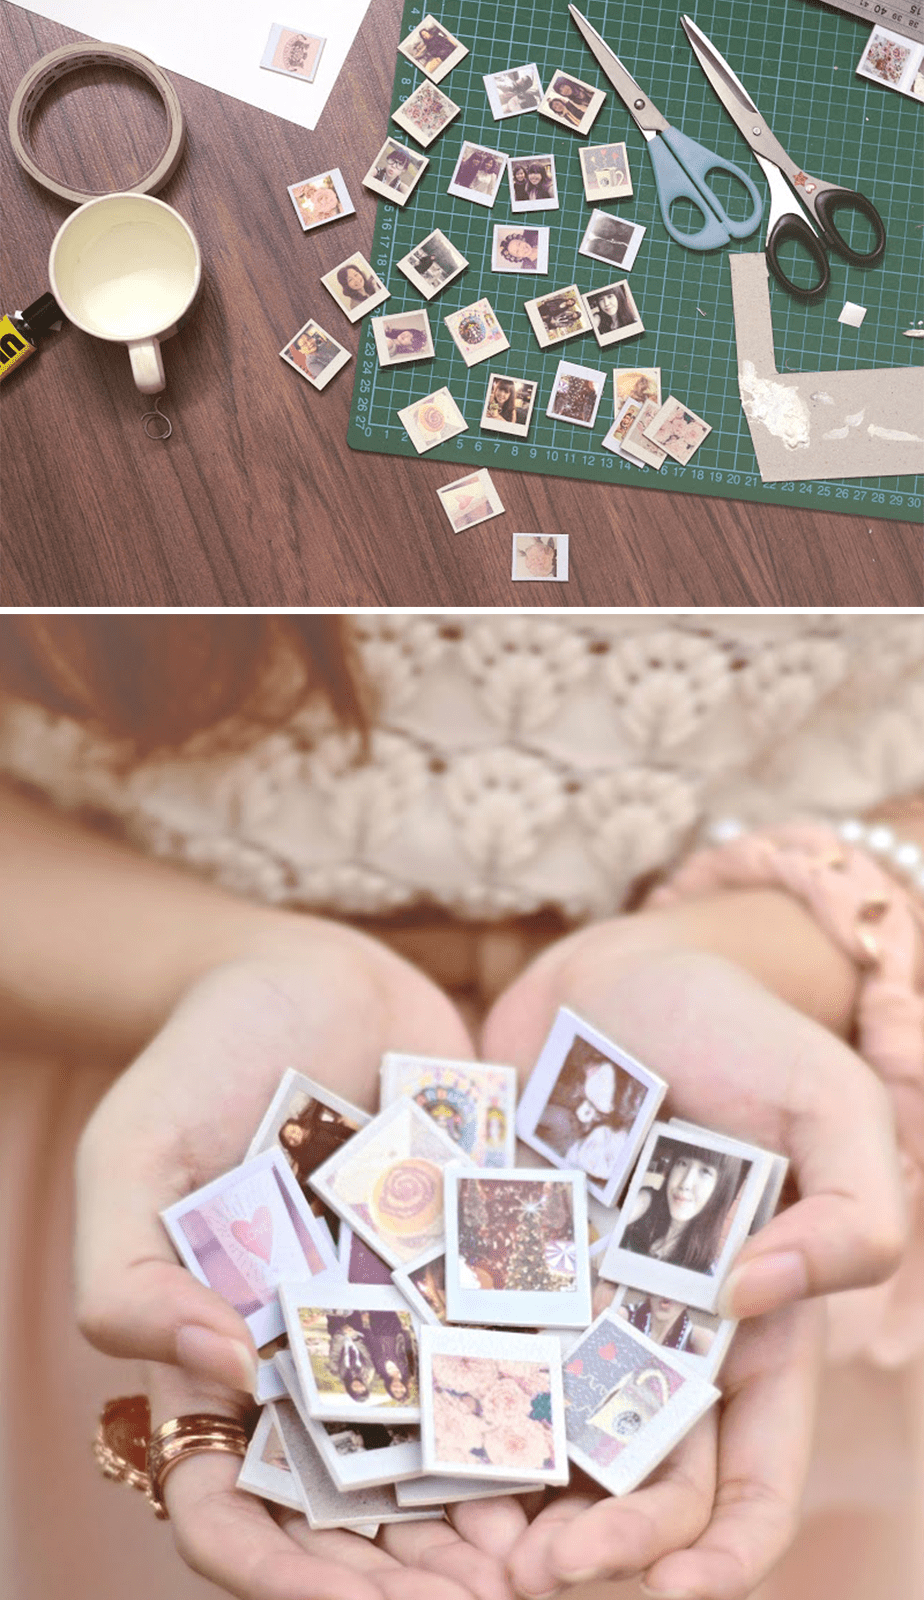 Wix Mother's Day Gift Idea: Pinterest Inspired Polaroid Photo Magnets